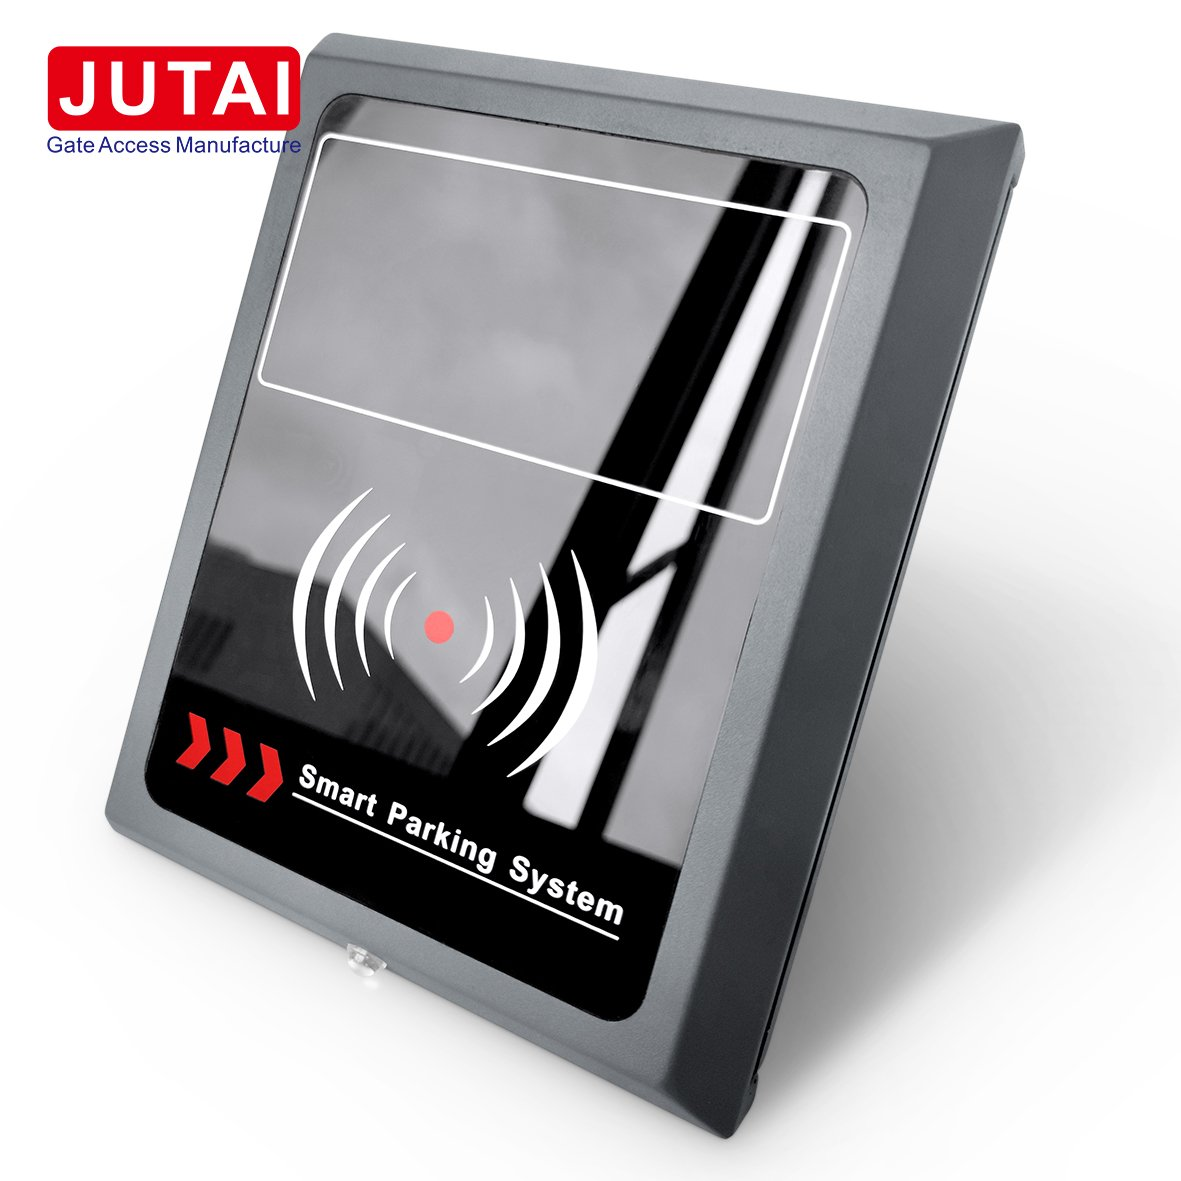 JUTAI Long Range UHF RFID Active Reader include actives tags